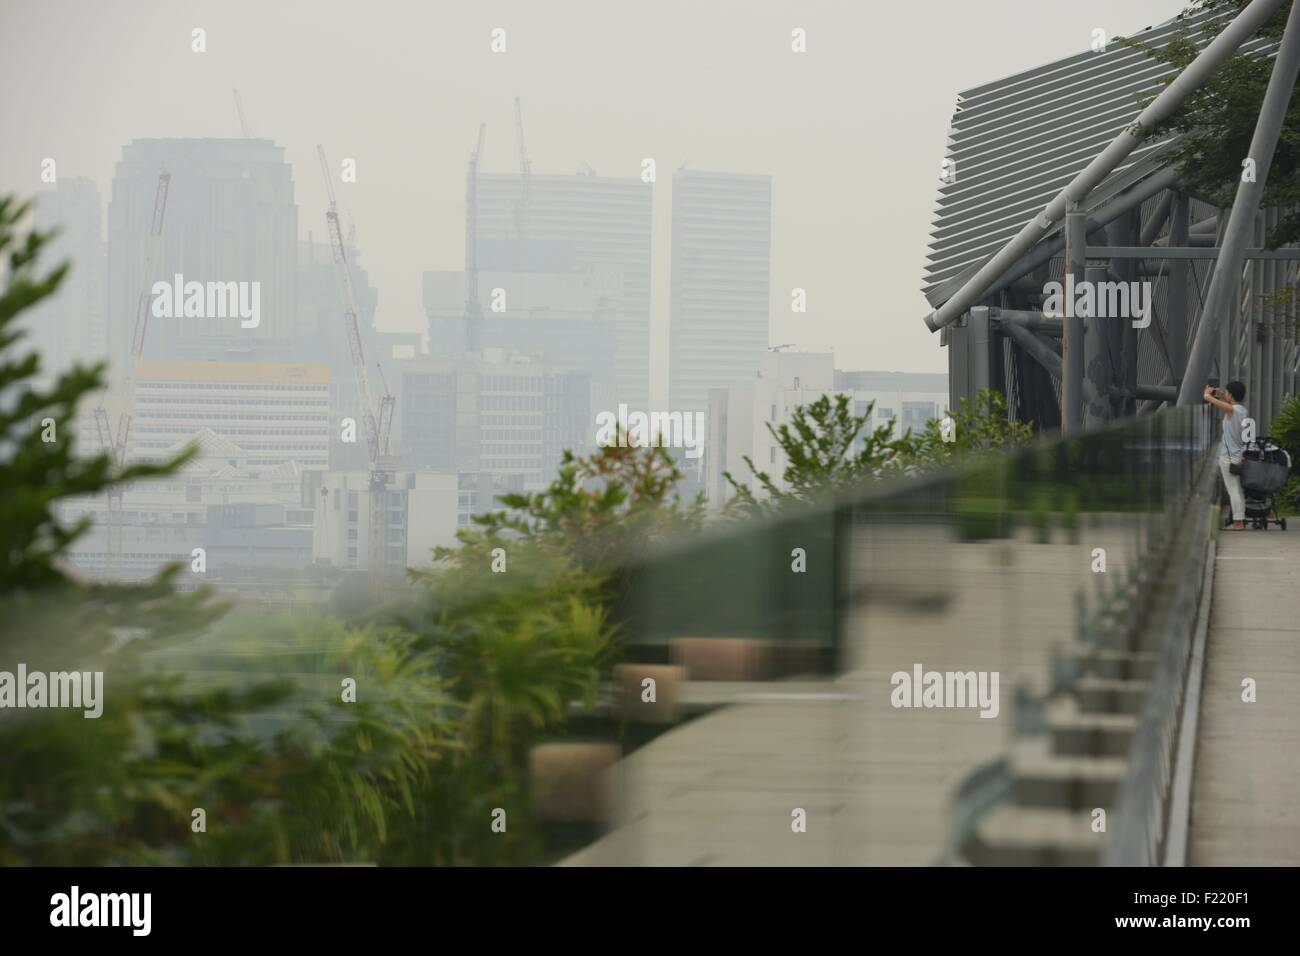 Singapore. 10th Sep, 2015. Haze looms over Singapore's shopping belt Orchard Road, on Sept. 10, 2015. Singapore's - Stock Image